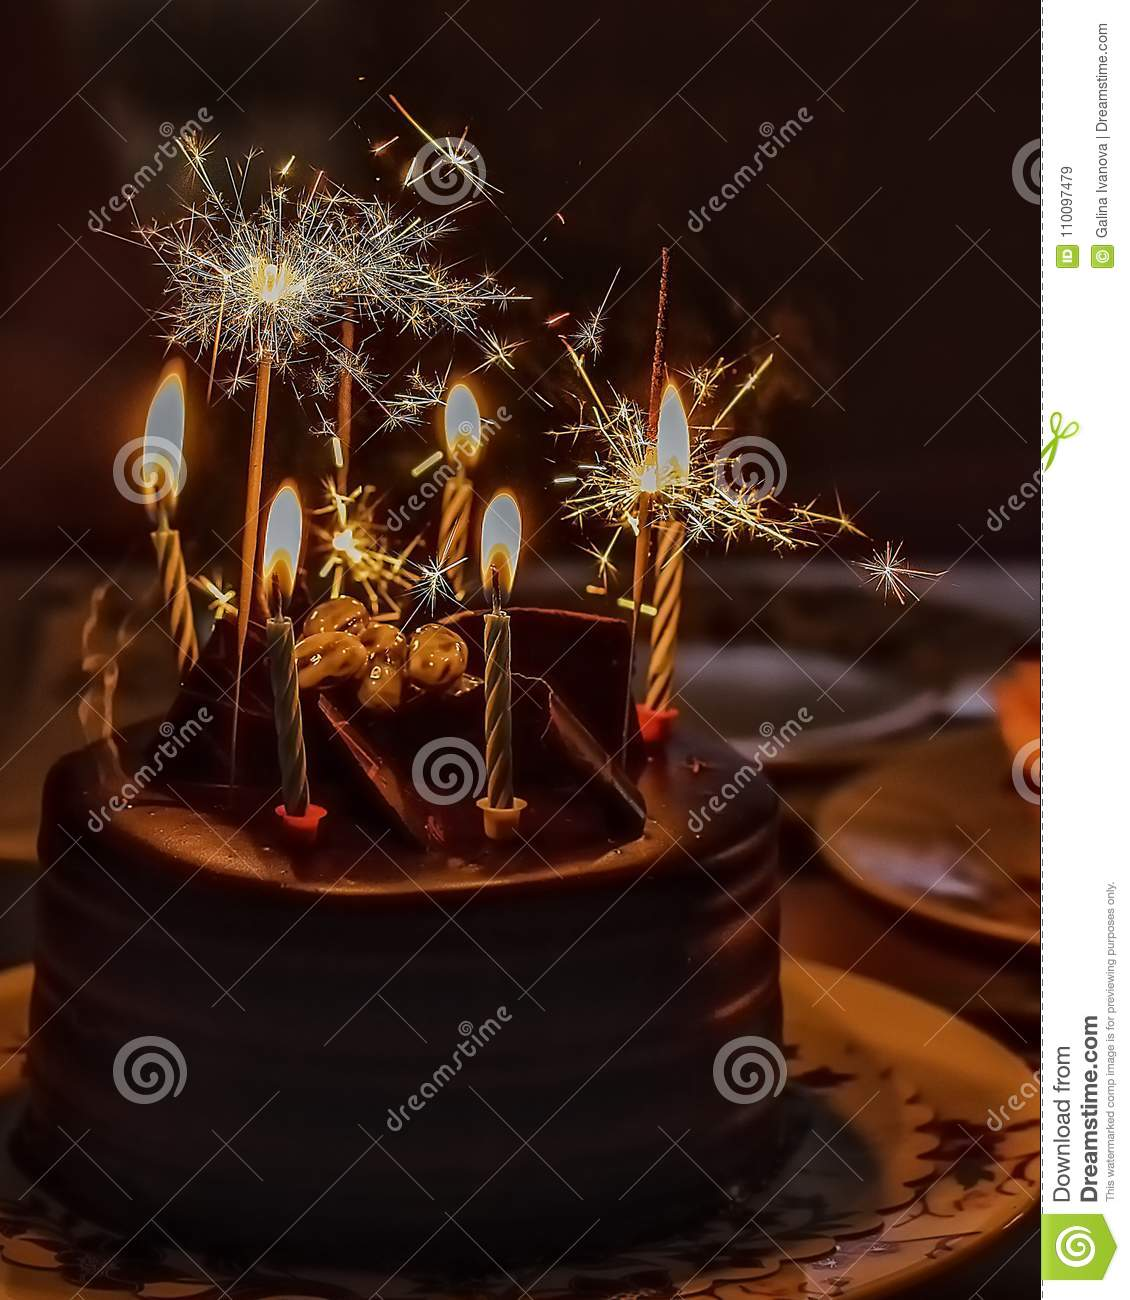 Chocolate Cake With Candles And Sparkling Light For Birthday